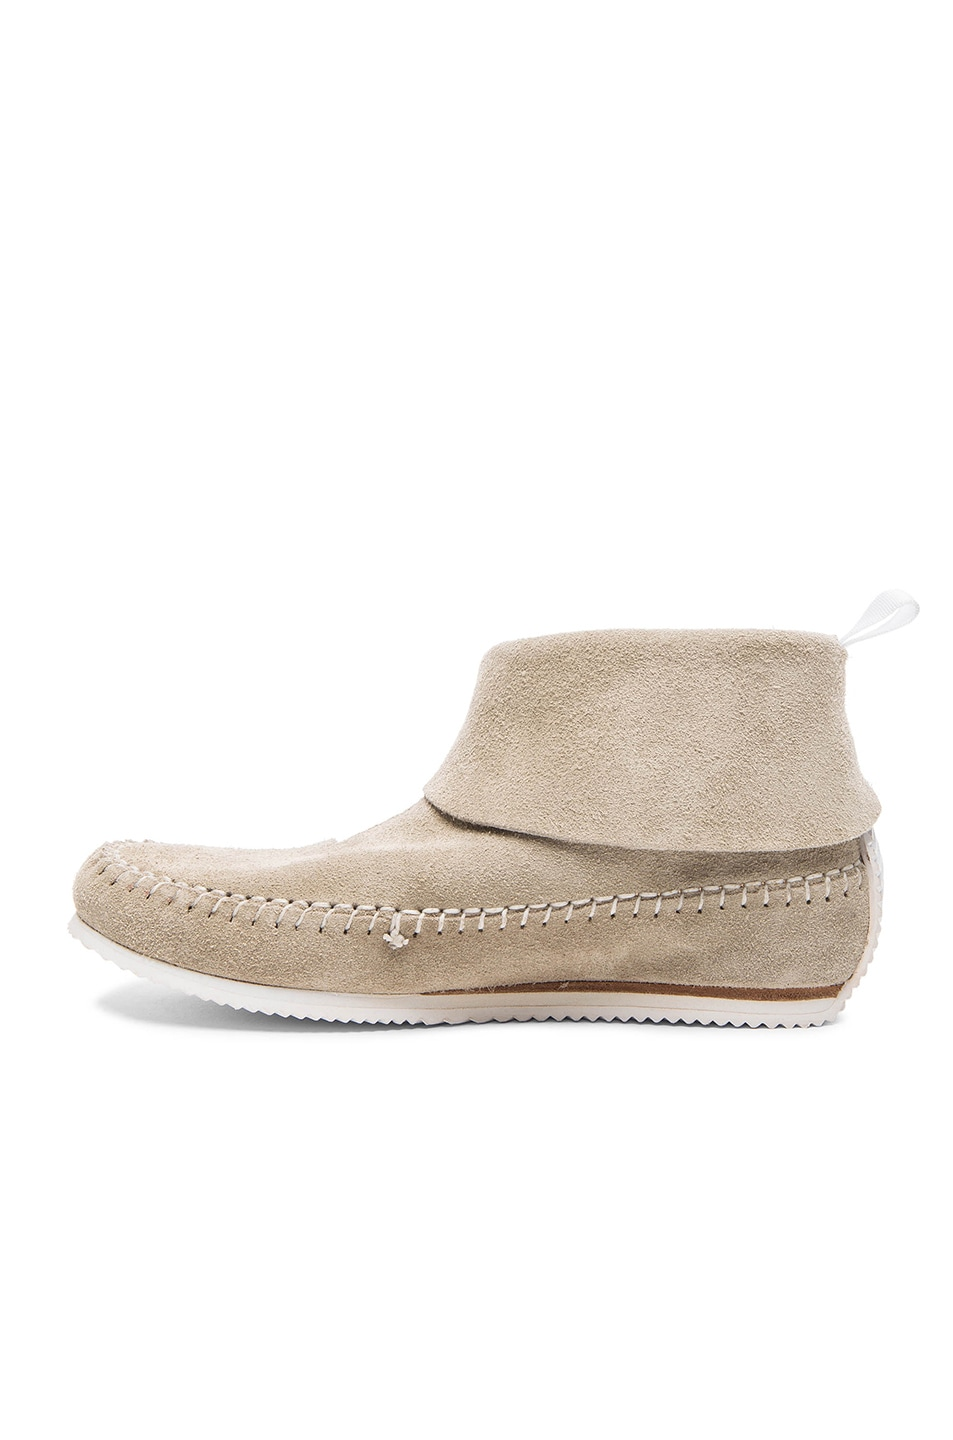 Womens Boots New Style 65413765 Rag Bone Brixton Suede Wedge Moccasins